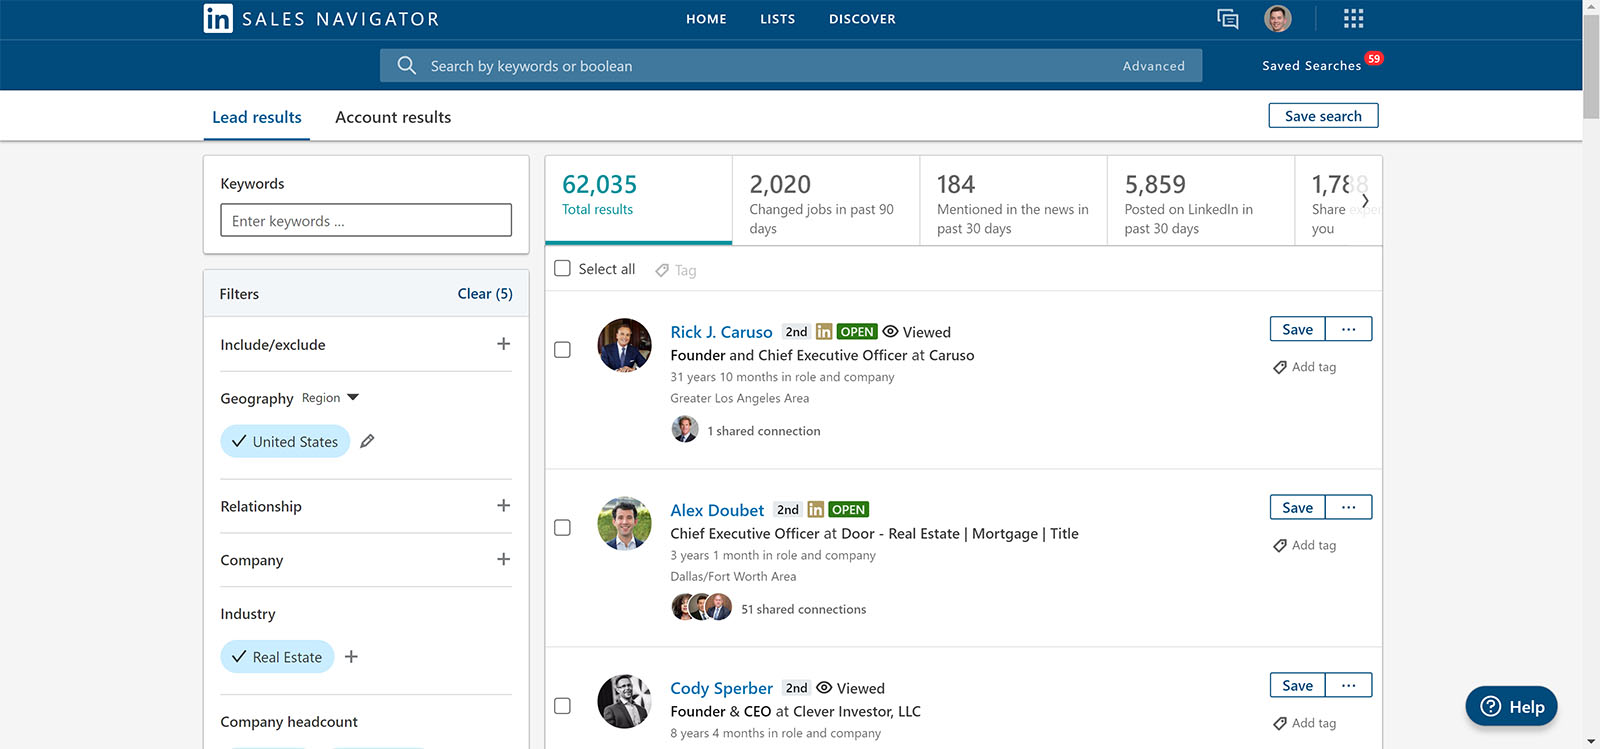 Using Linkedin sales navigator to generate B2B leads